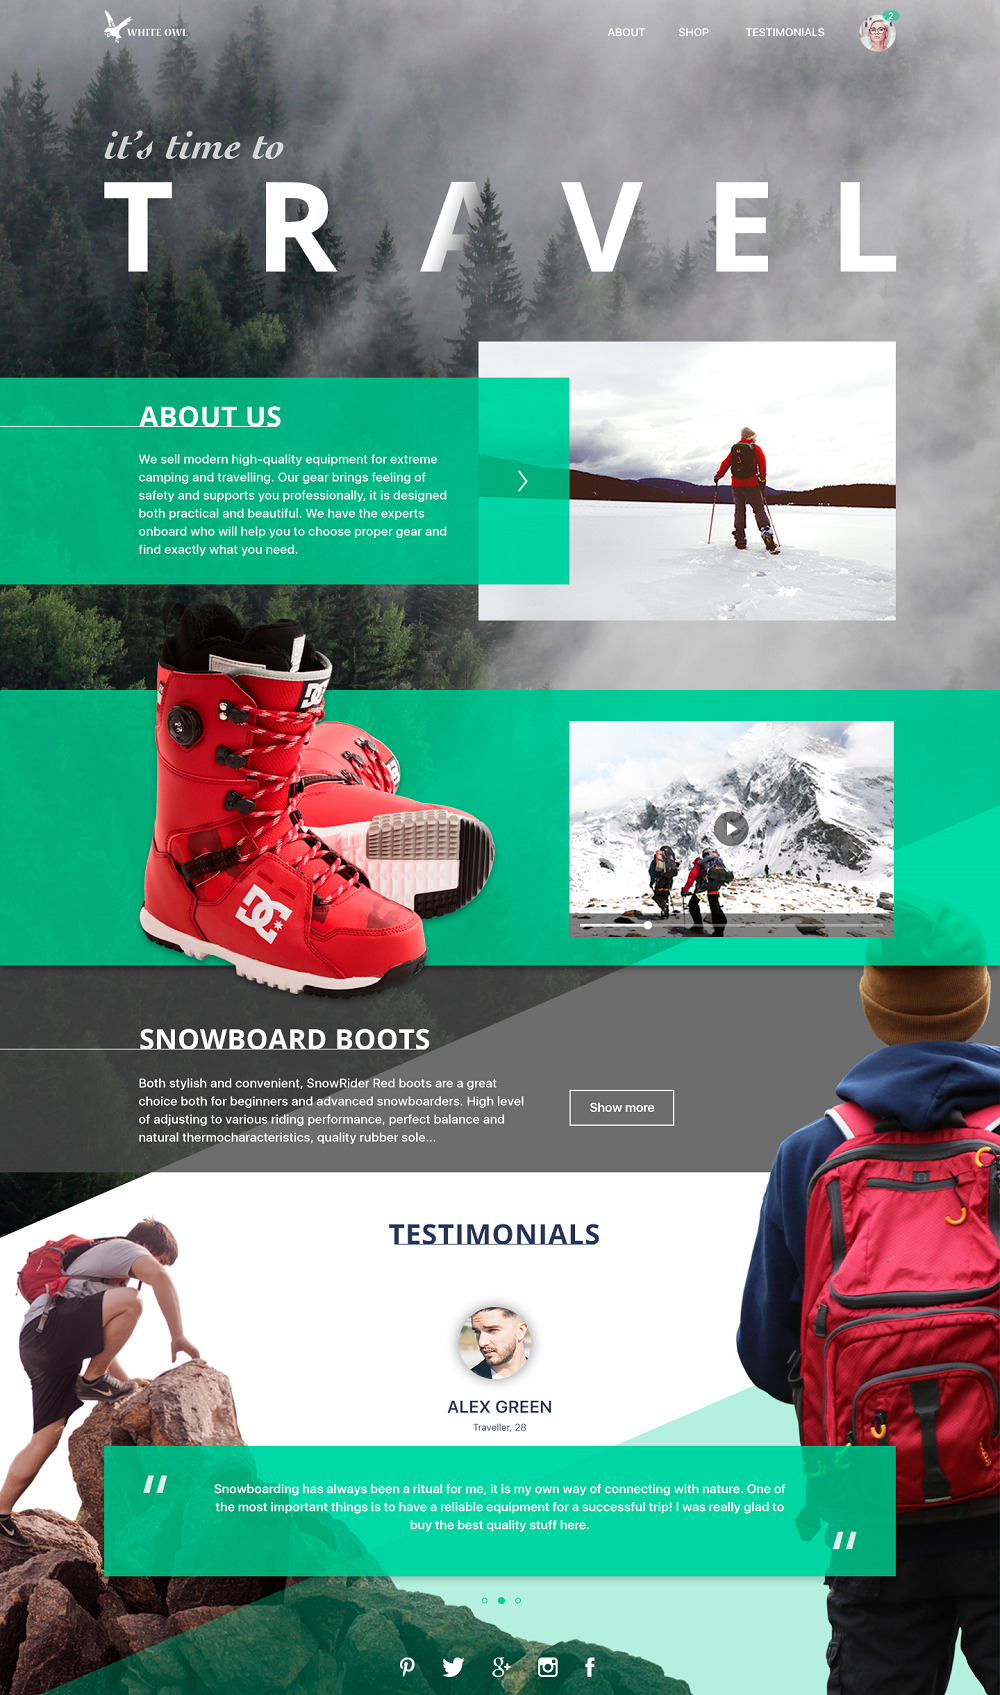 tubikstudio_travel_gear_landing_page